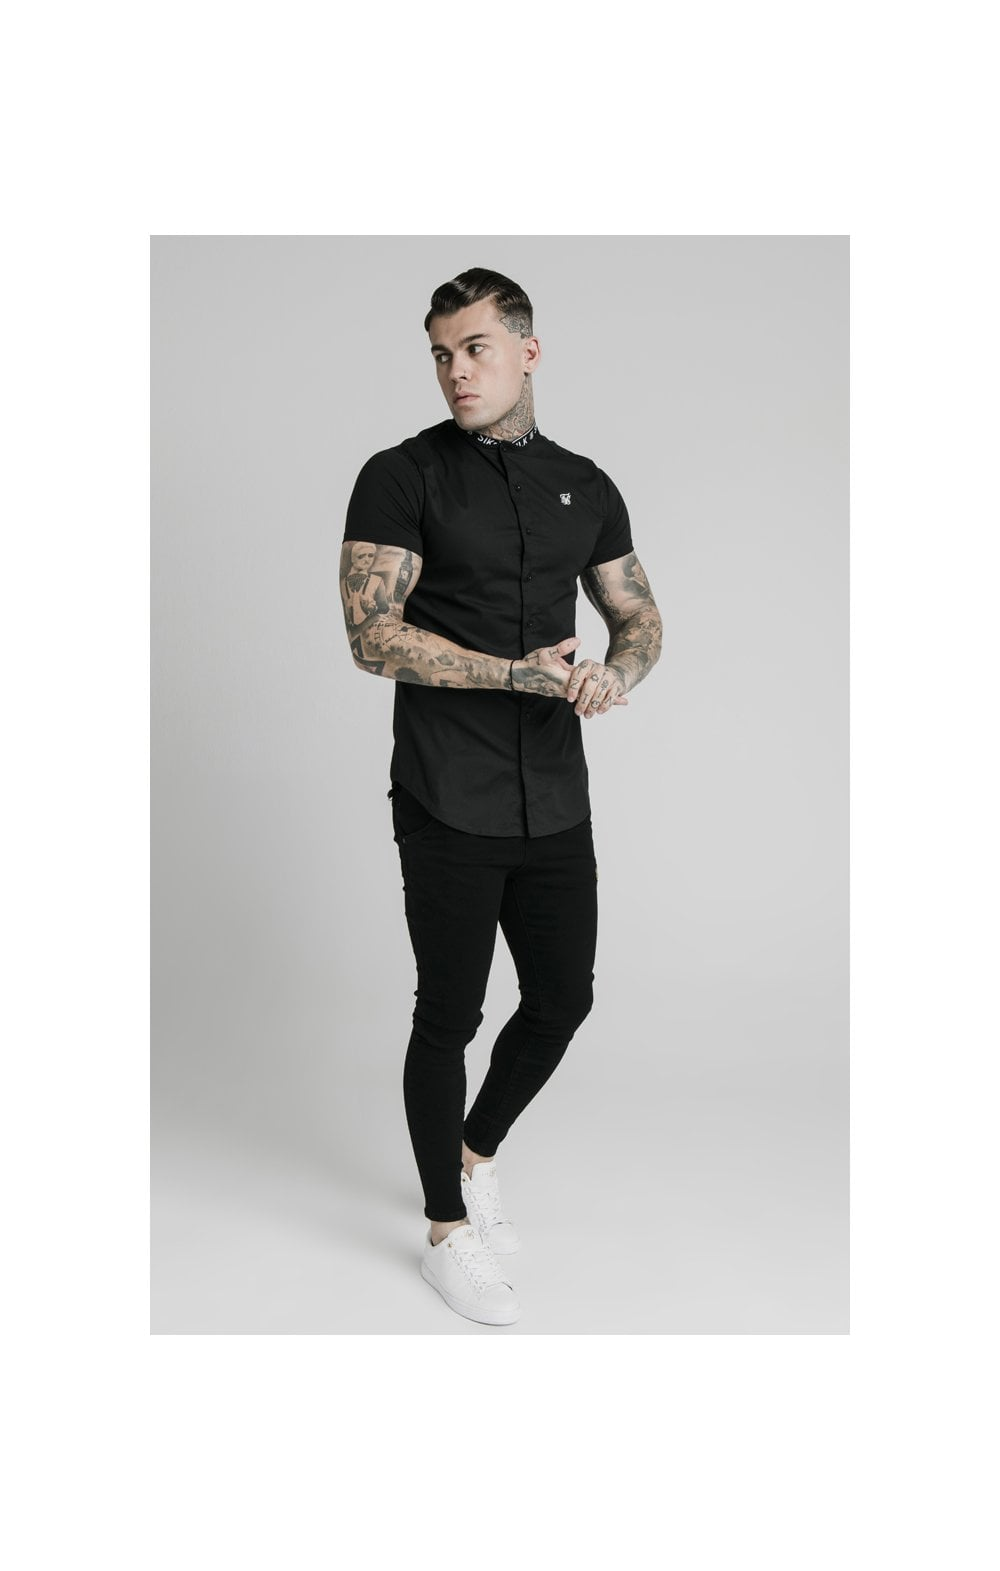 SikSilk S/S Tape Collar Shirt - Black (3)